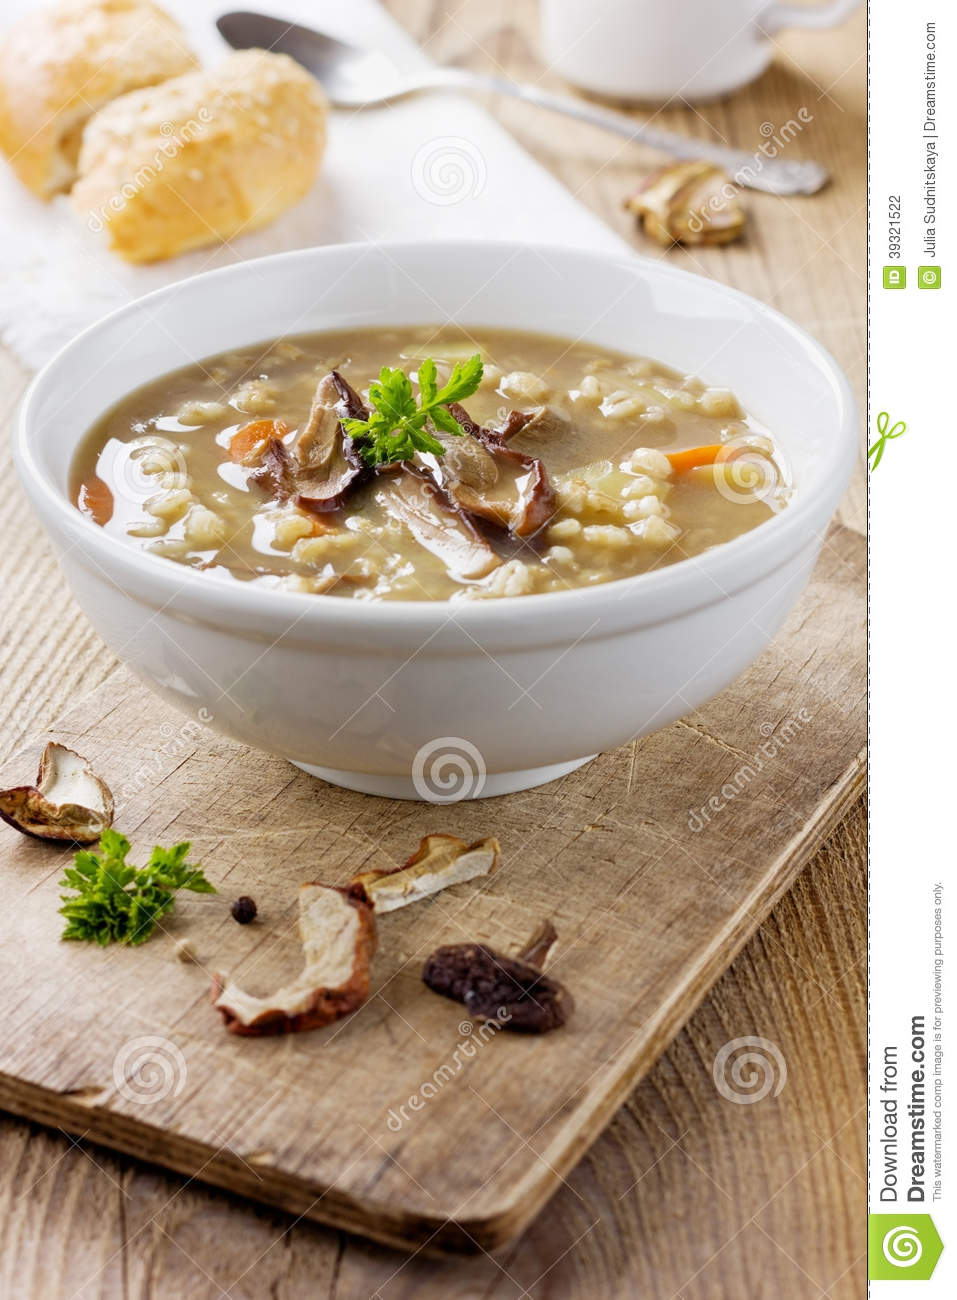 Mushroom soup with barley and vegetables